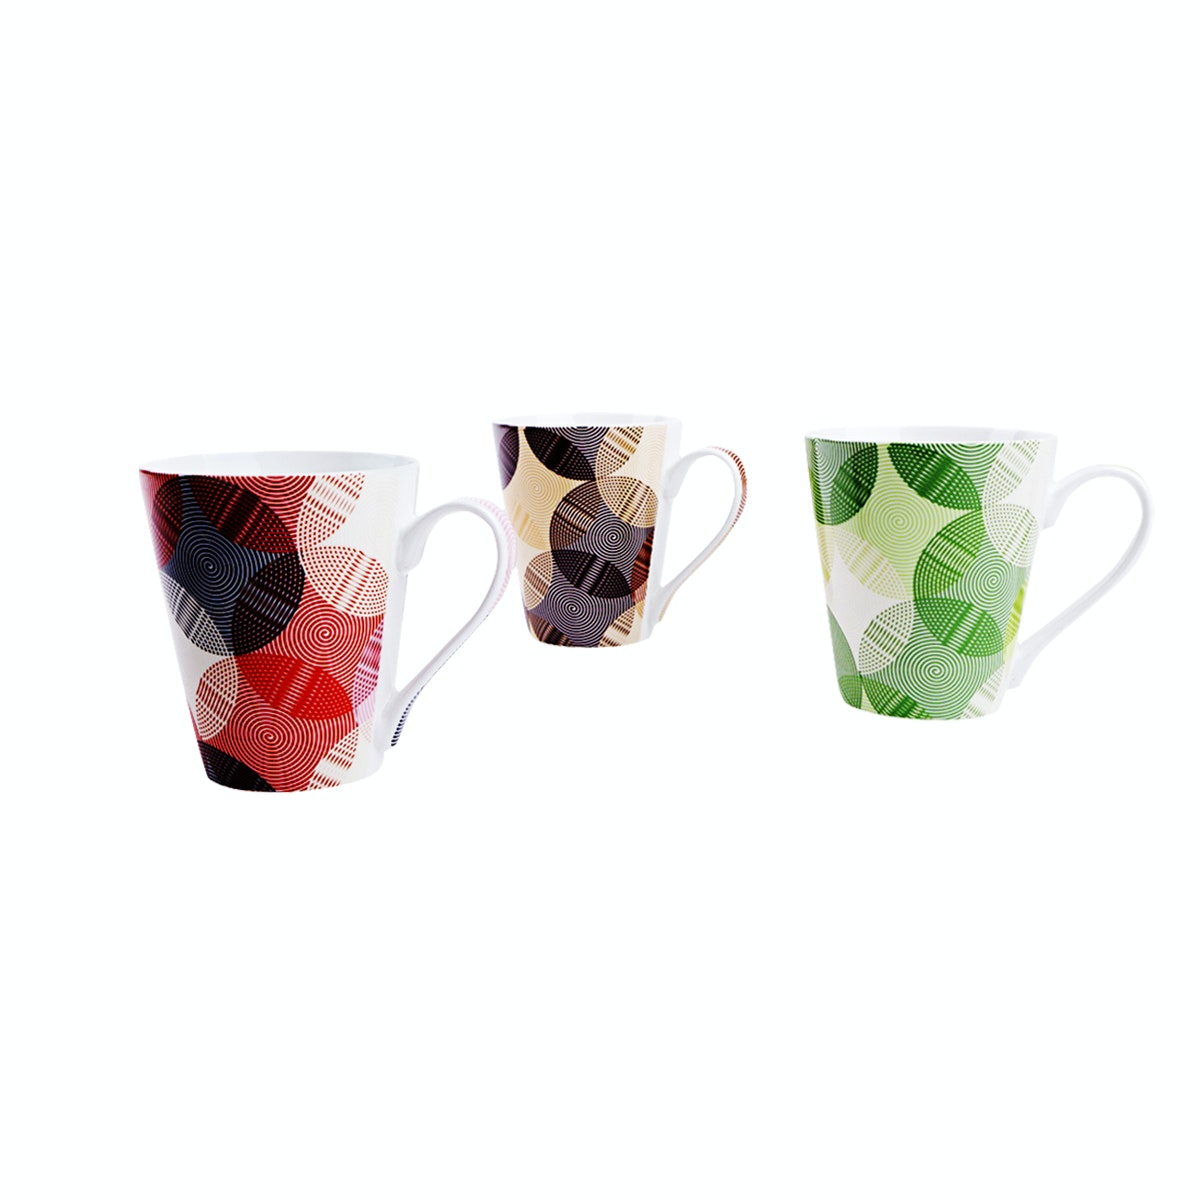 Nakami 3 Pcs New Bone Mug Set S160047